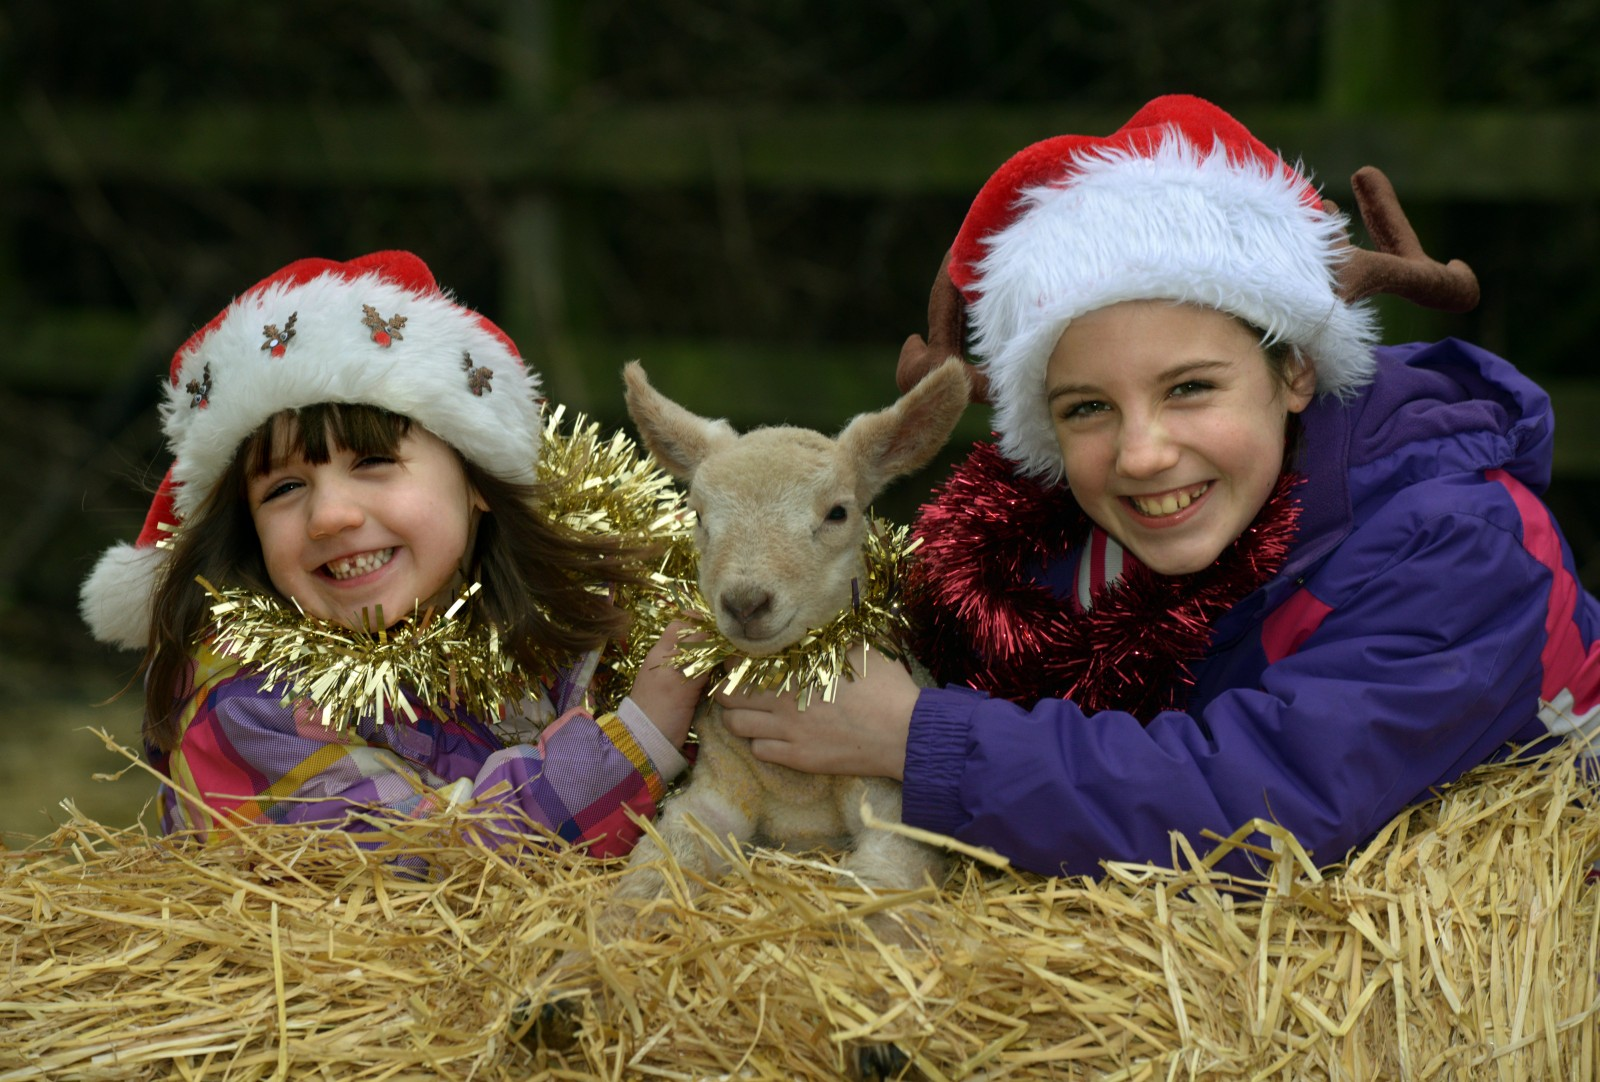 Rudolph the lamb has made two sisters very happy this Christmas!